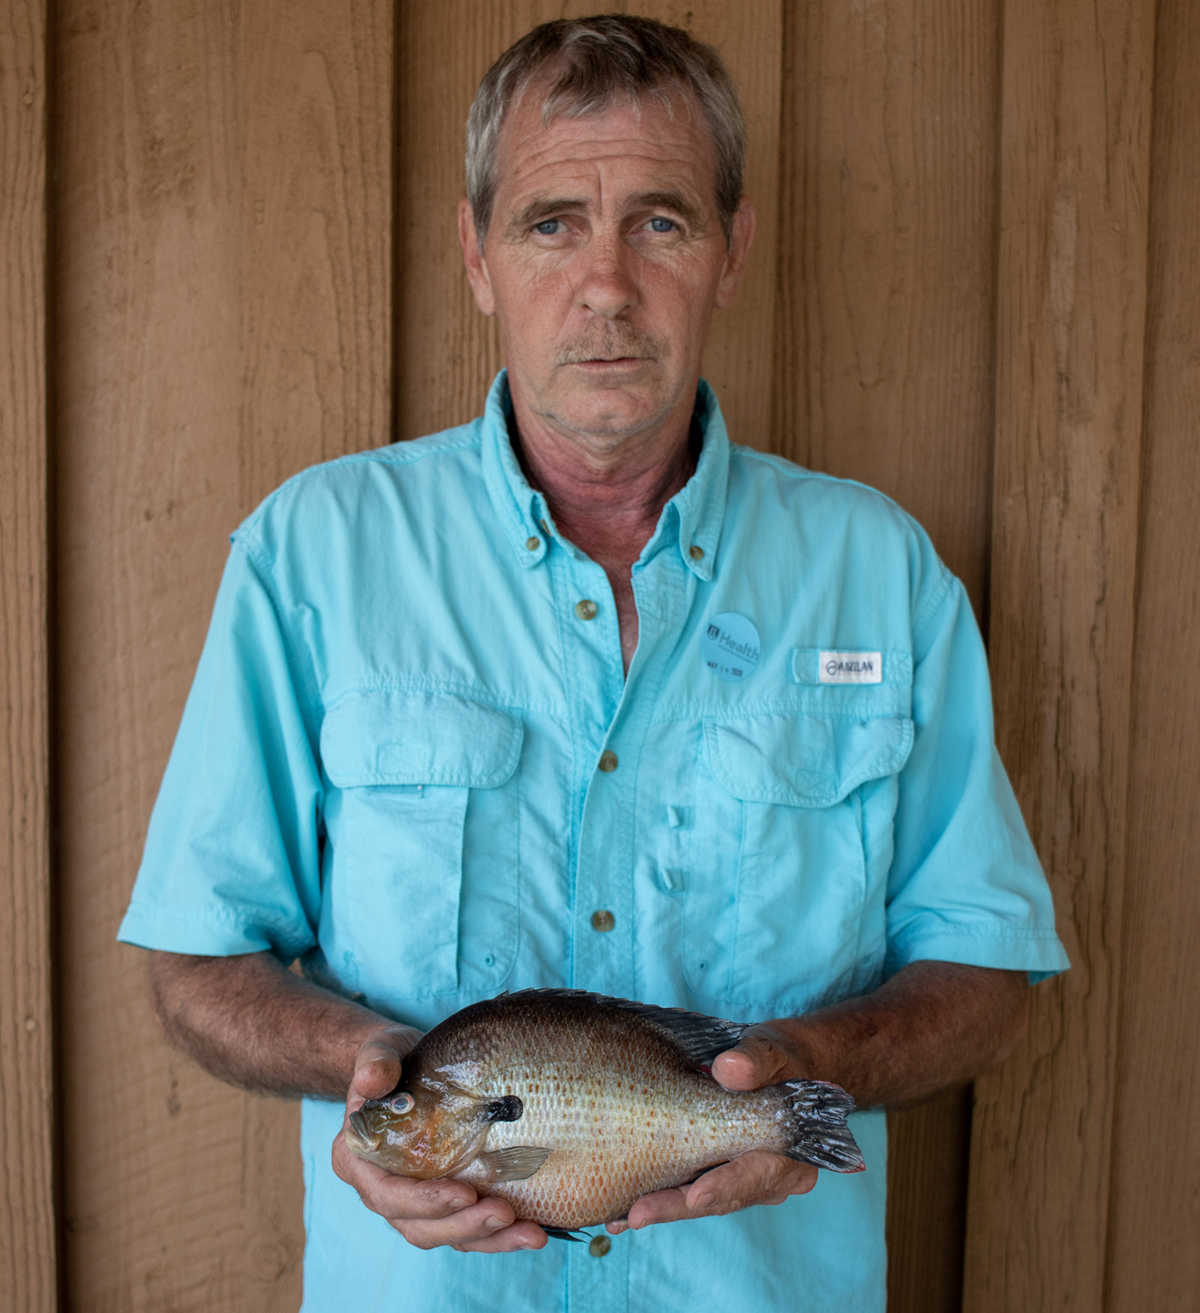 Danny Vann with his record-setting redbreast. Doesn't look very happy, does he?